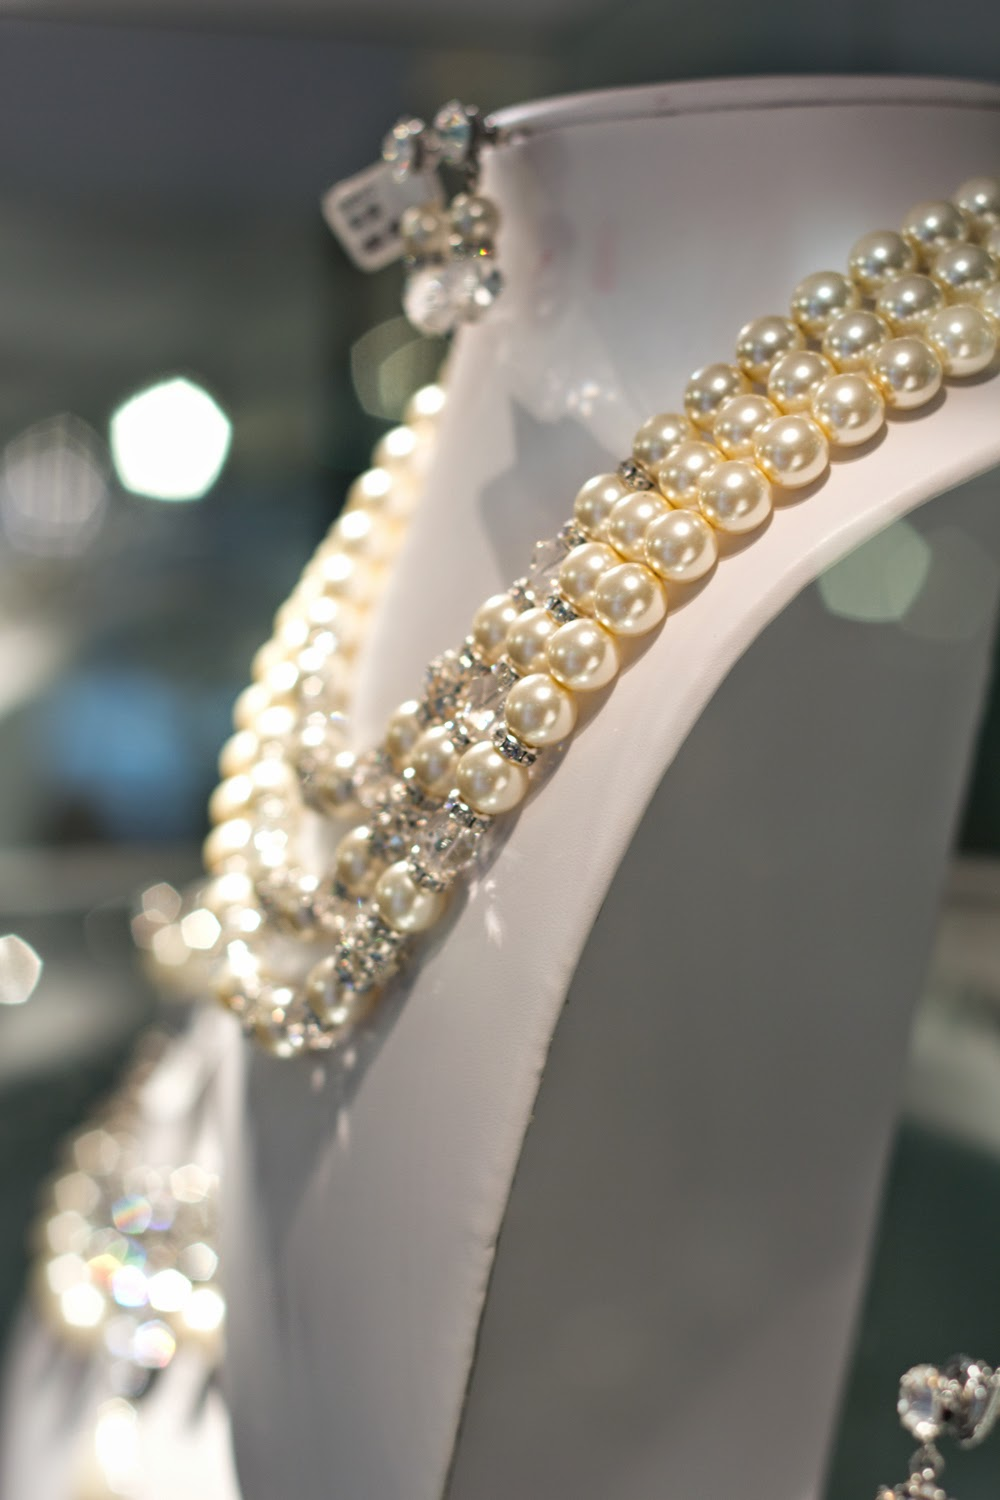 artemis-pop-up-jewellery-store-in-yorkville, statement-necklace, pearls